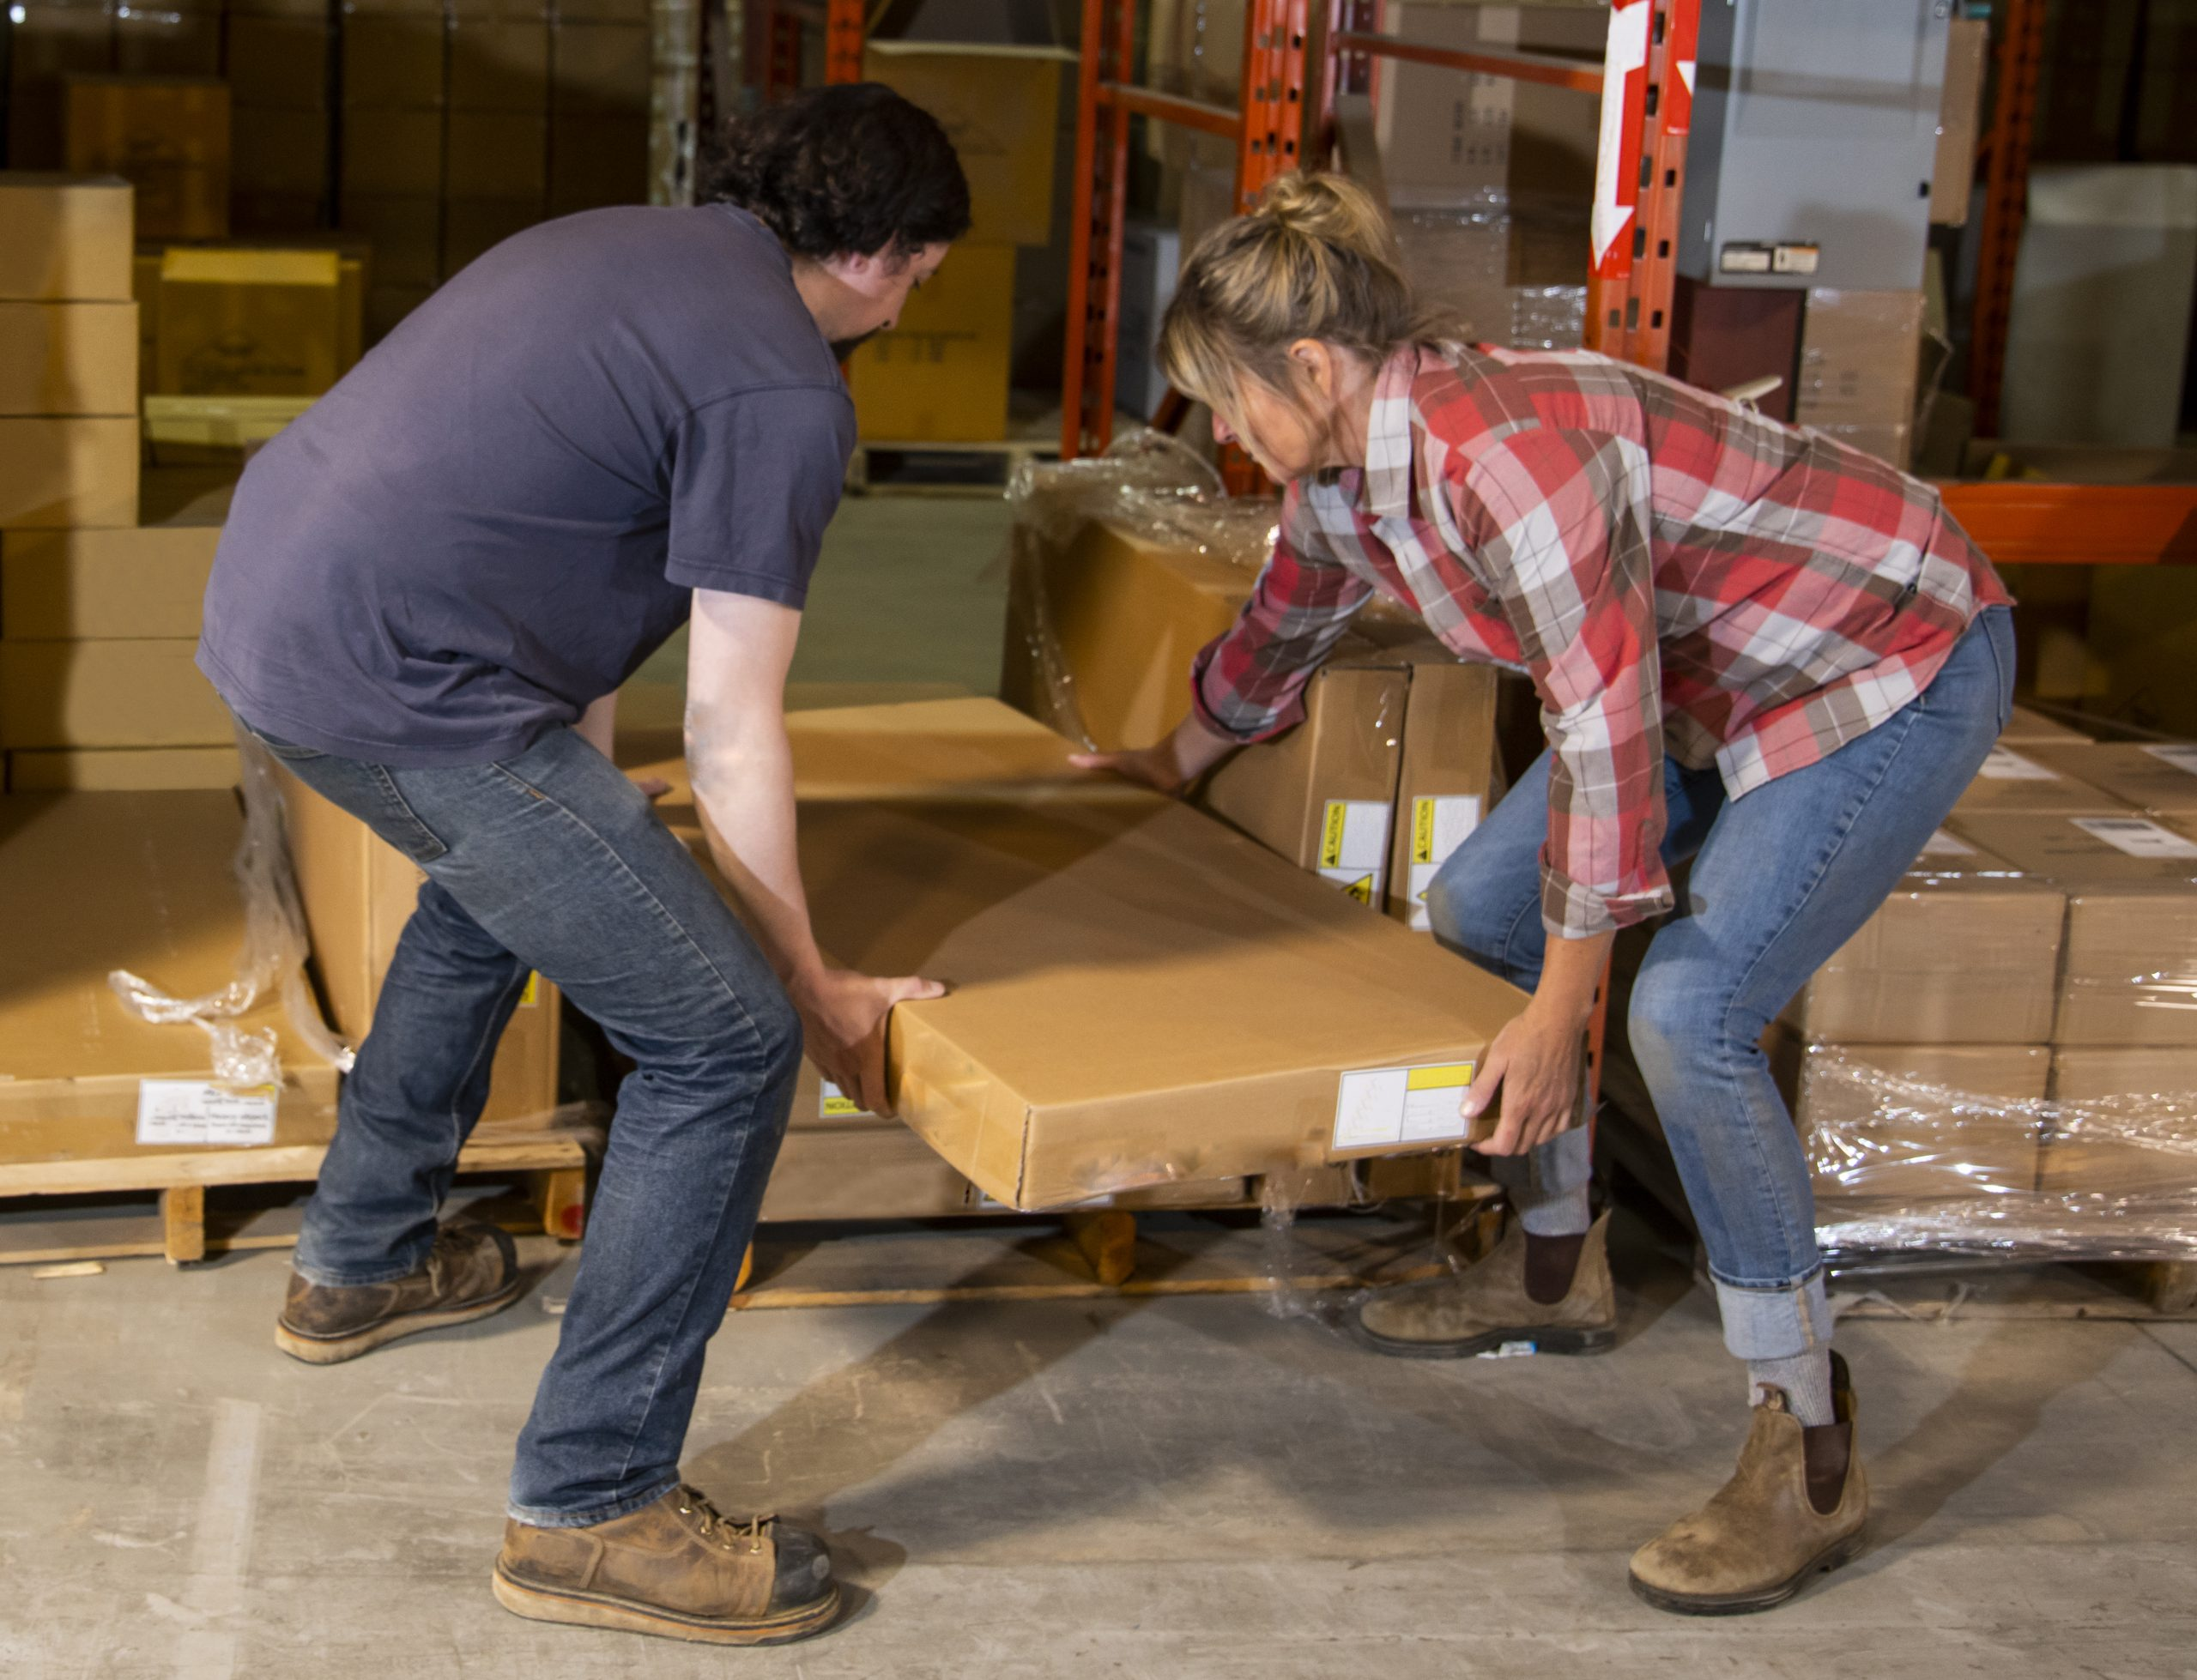 People lifting a heavy box